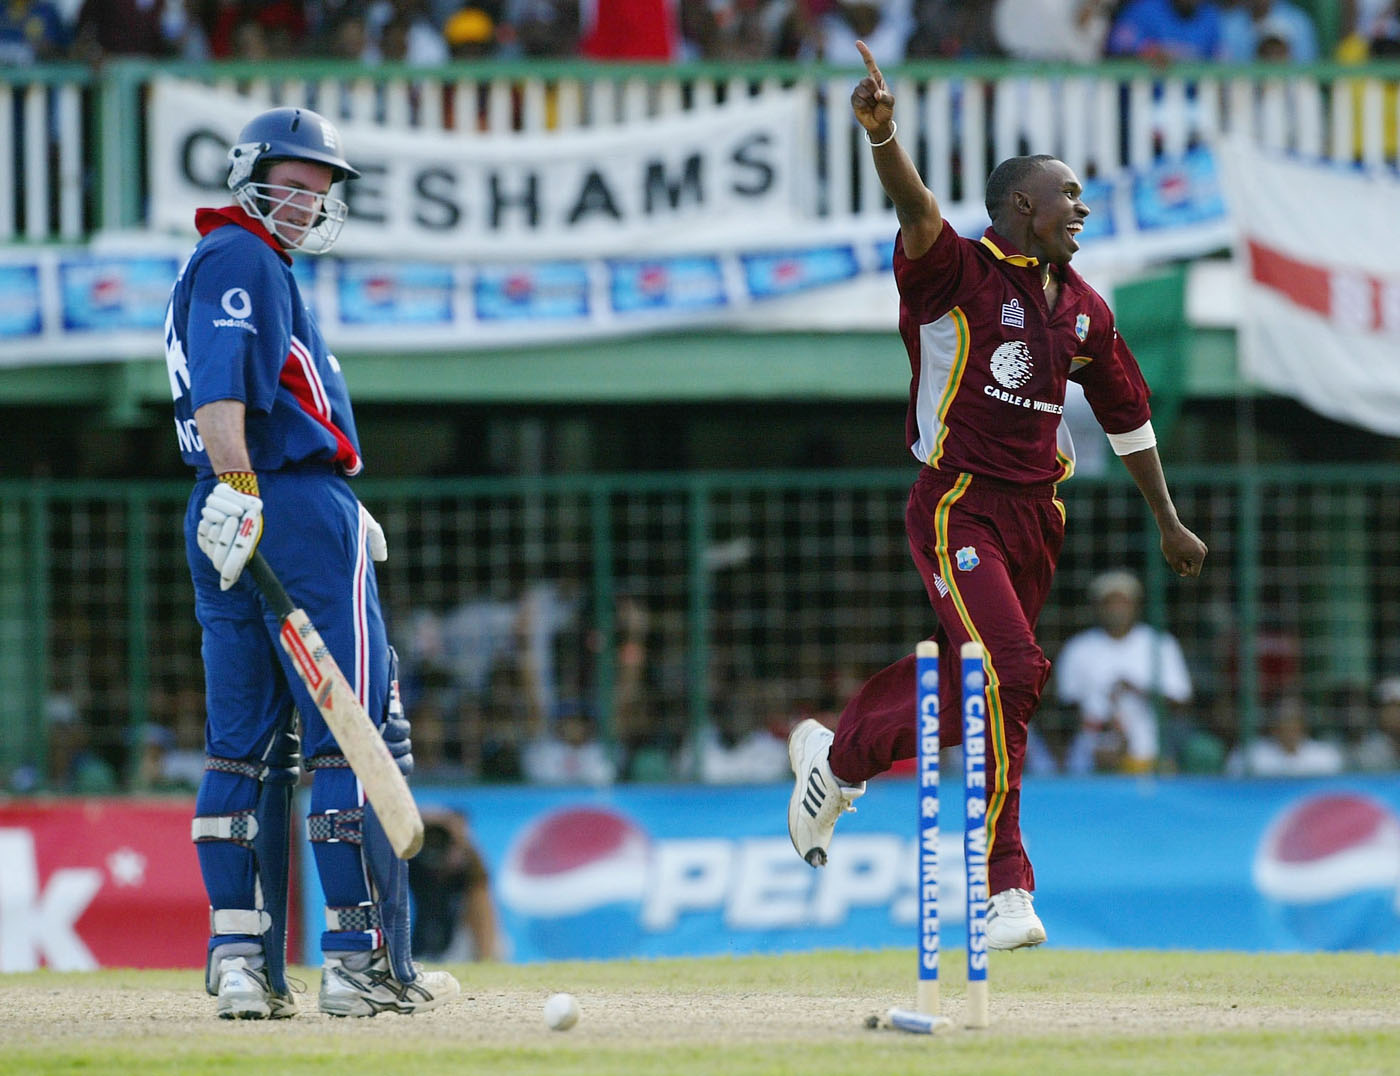 Dwayne Bravo, on debut, rattled England in the middle overs